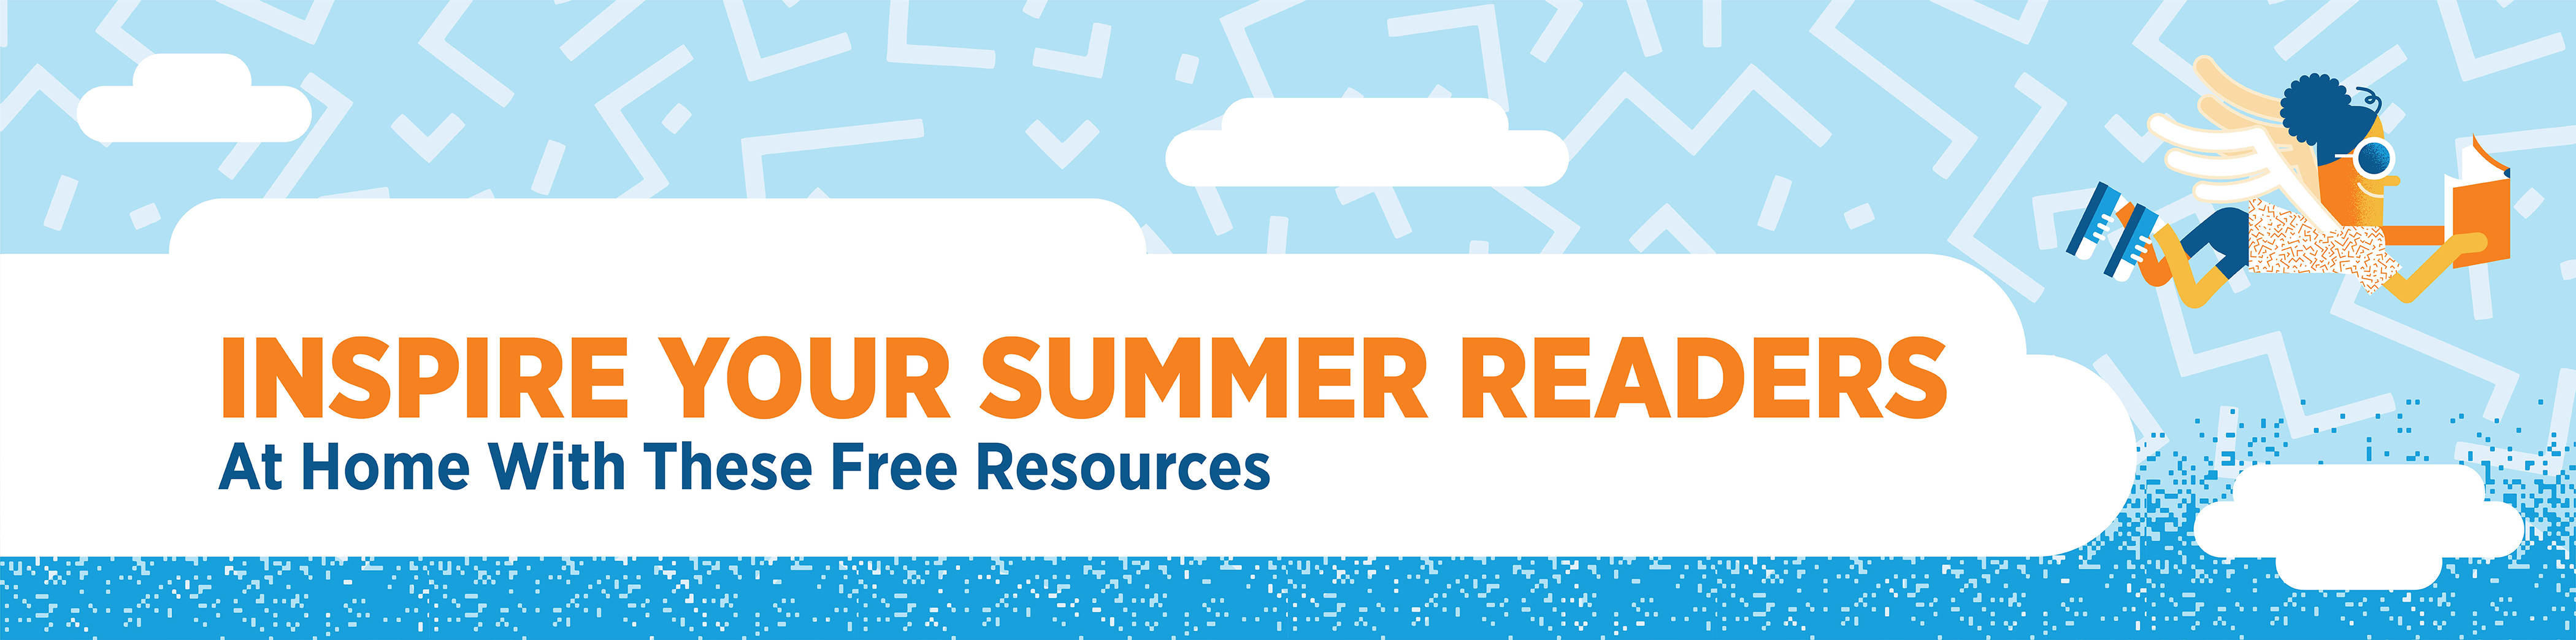 Summer Reading Header Graphic